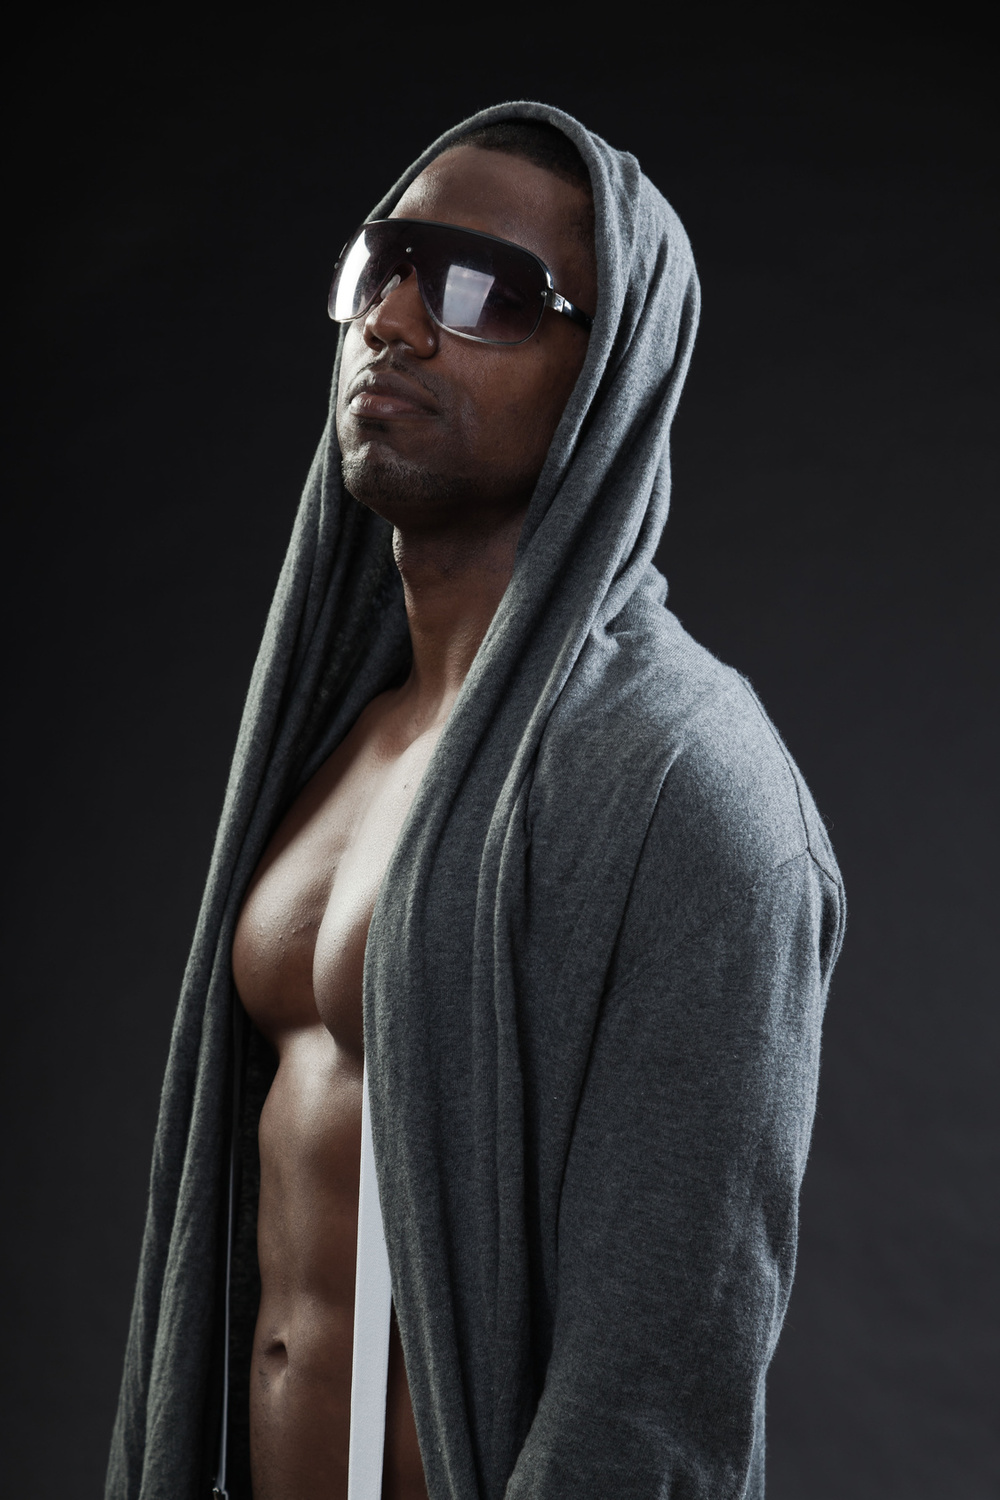 Black fitness man urban style with dark sunglasses. Studio shot.